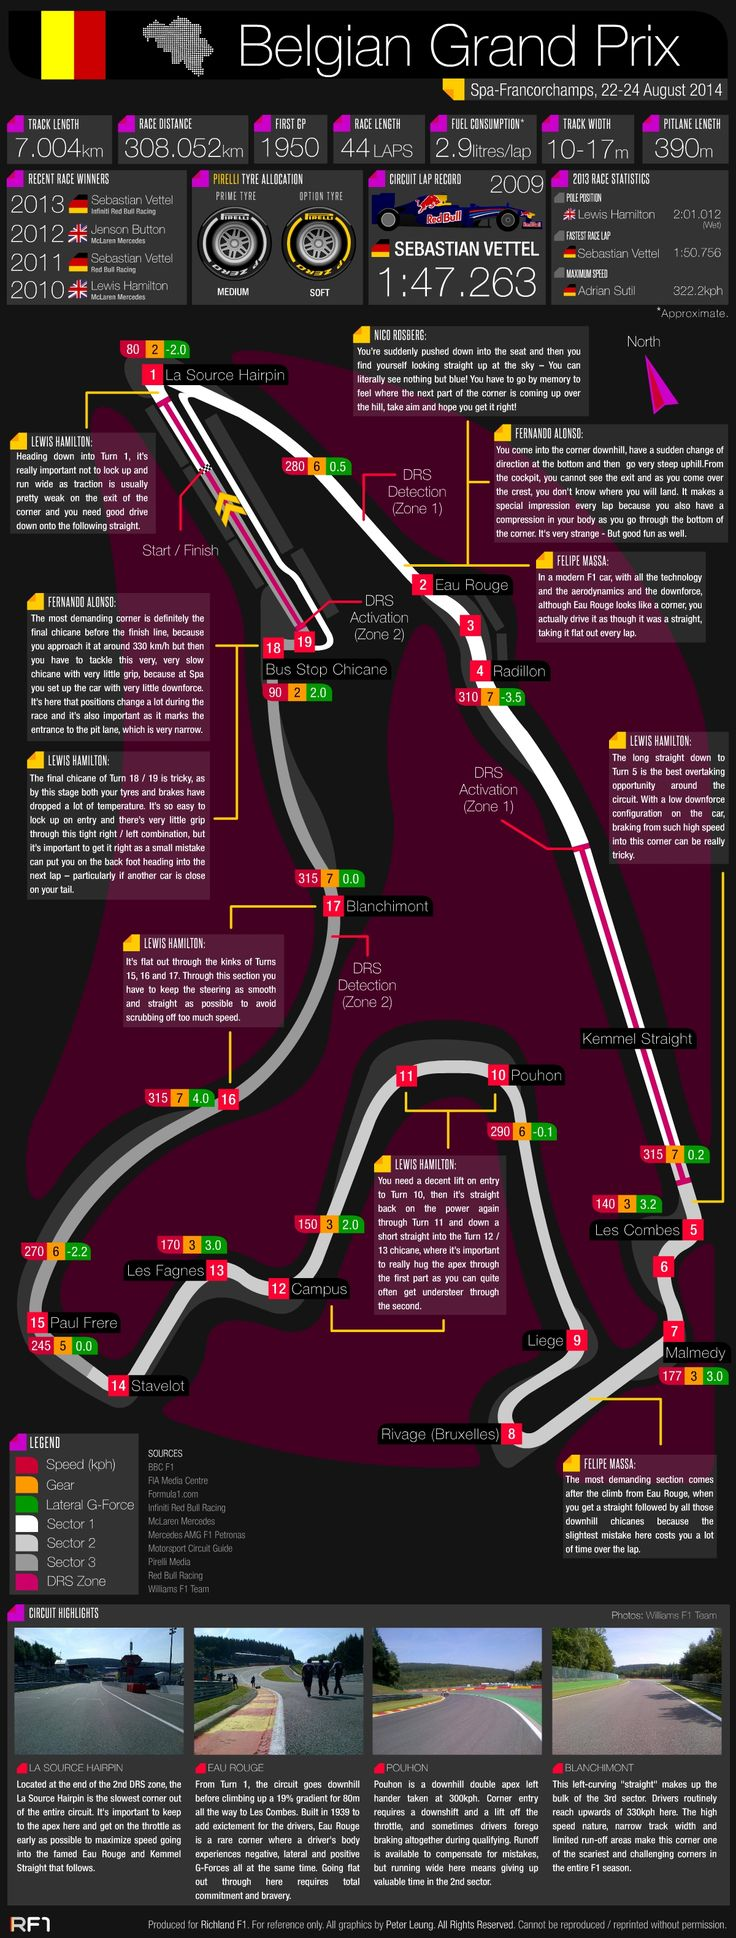 Grand Prix Guide - 2014 Belgian Grand Prix #F1